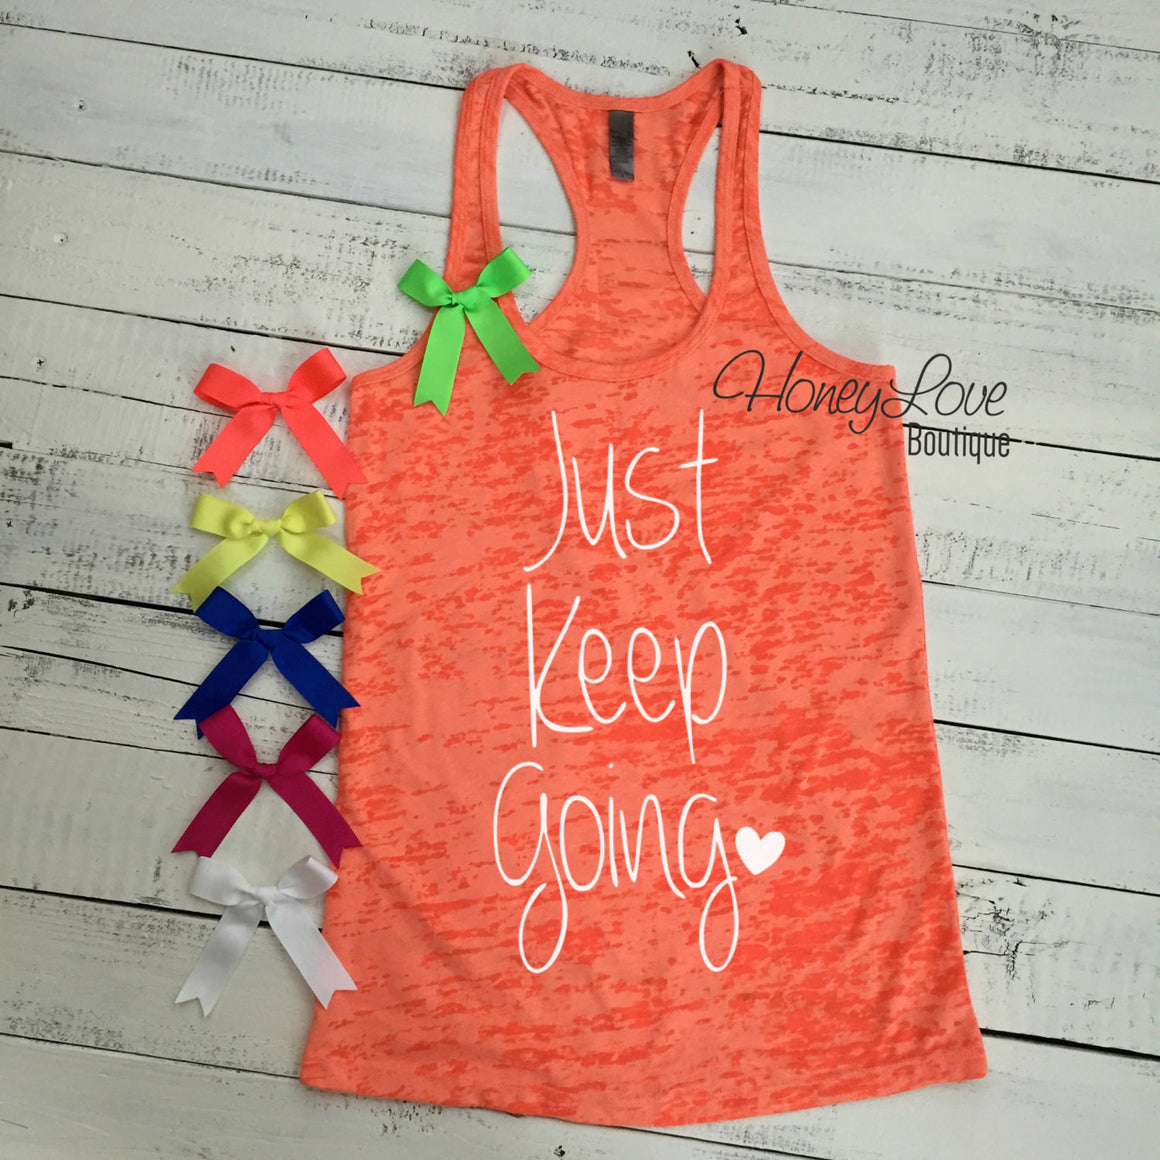 Just Keep Going - HoneyLoveBoutique